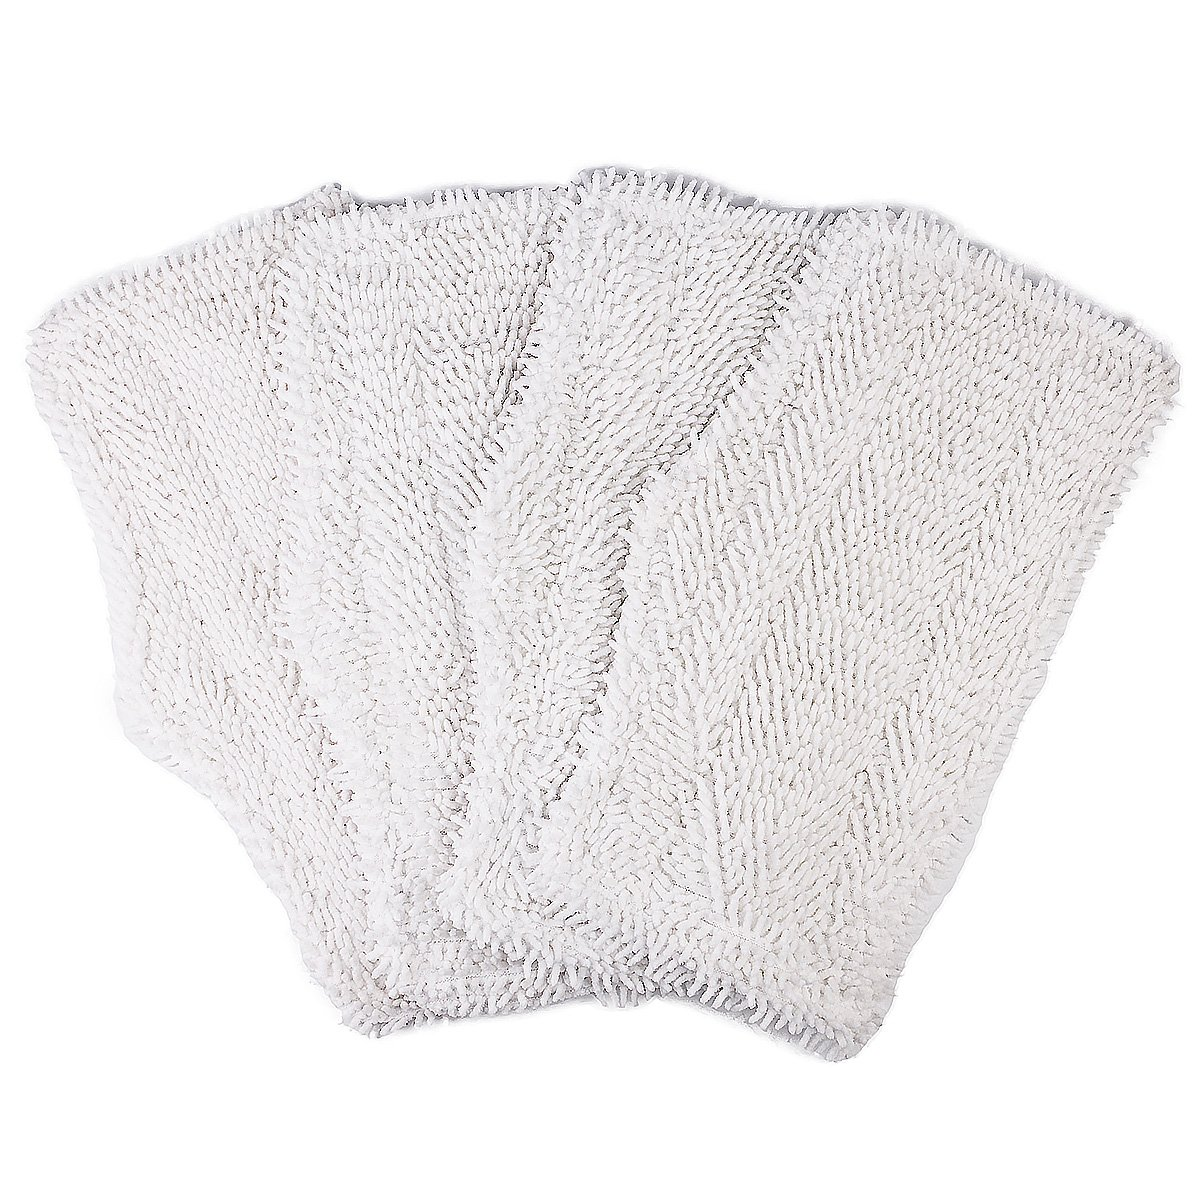 Flammi Washable Cleaning Pads Replacement for Shark Steam & Spray Mop SK410, SK435CO, SK460, SK140, SK141, SK115, S3101, S3102, S3250, S3251 (4-Pack)